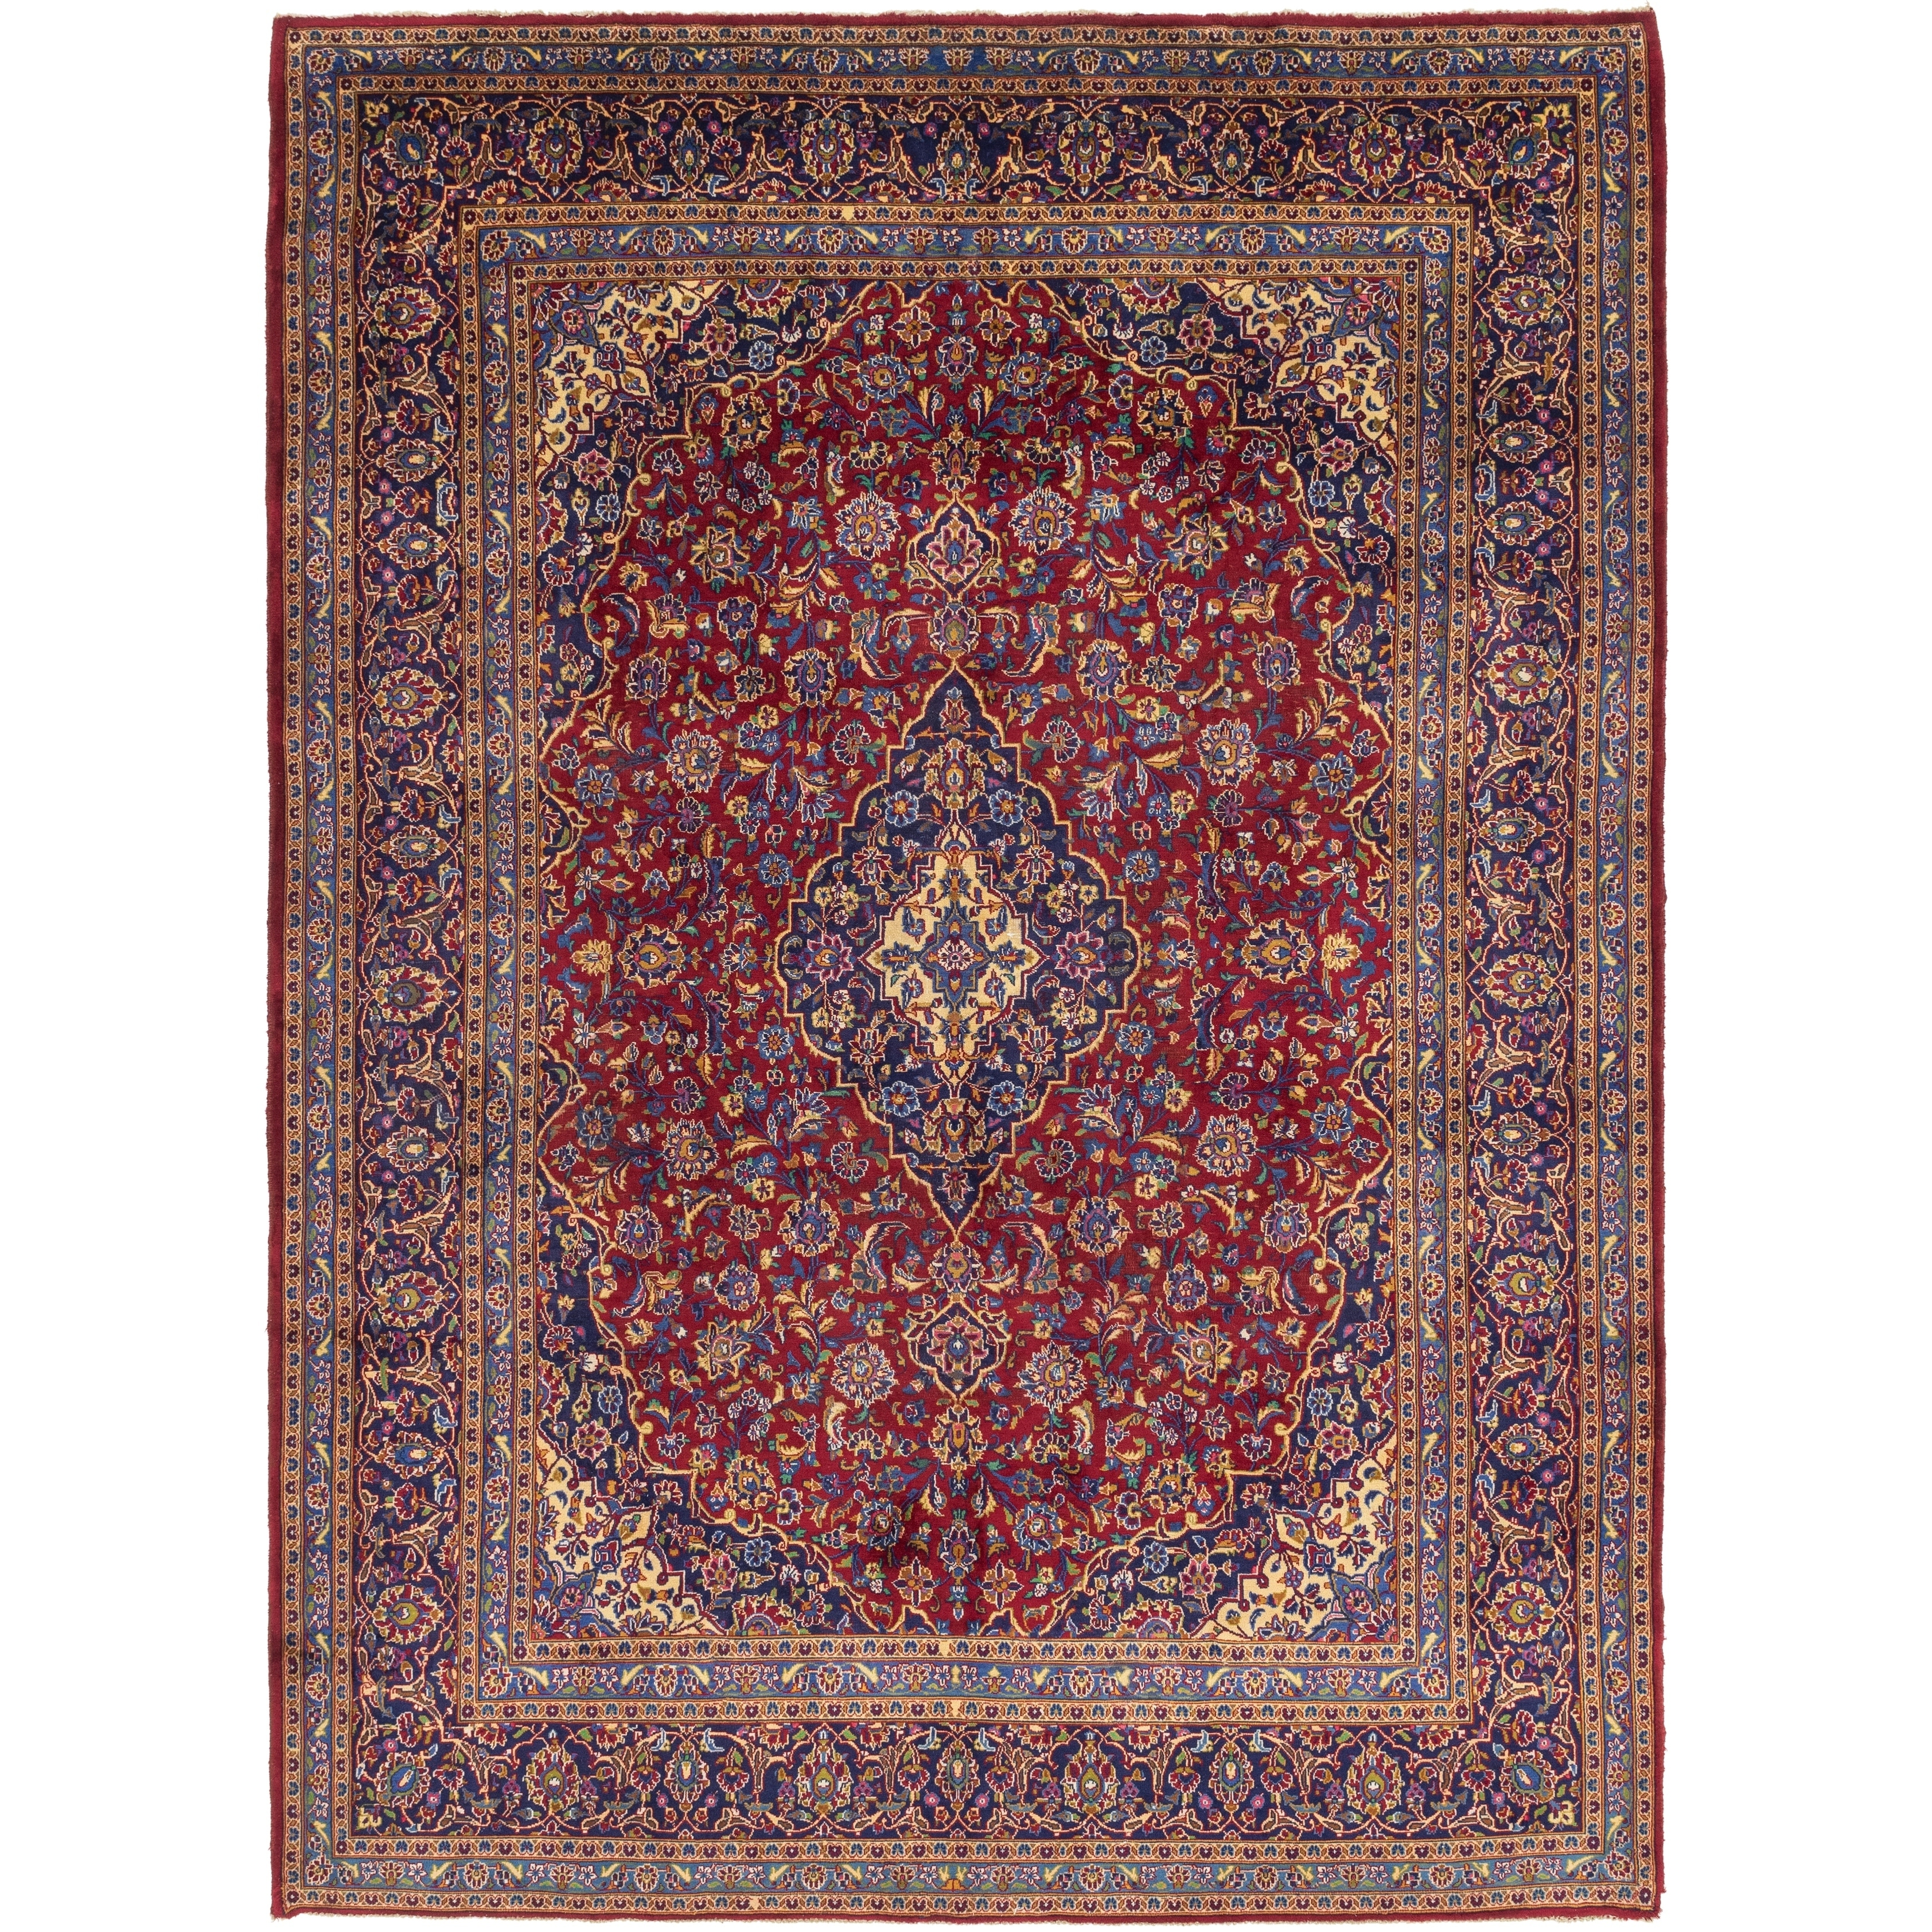 Hand Knotted Kashan Wool Area Rug - 10 x 13 5 (Beige - 10 x 13 5)